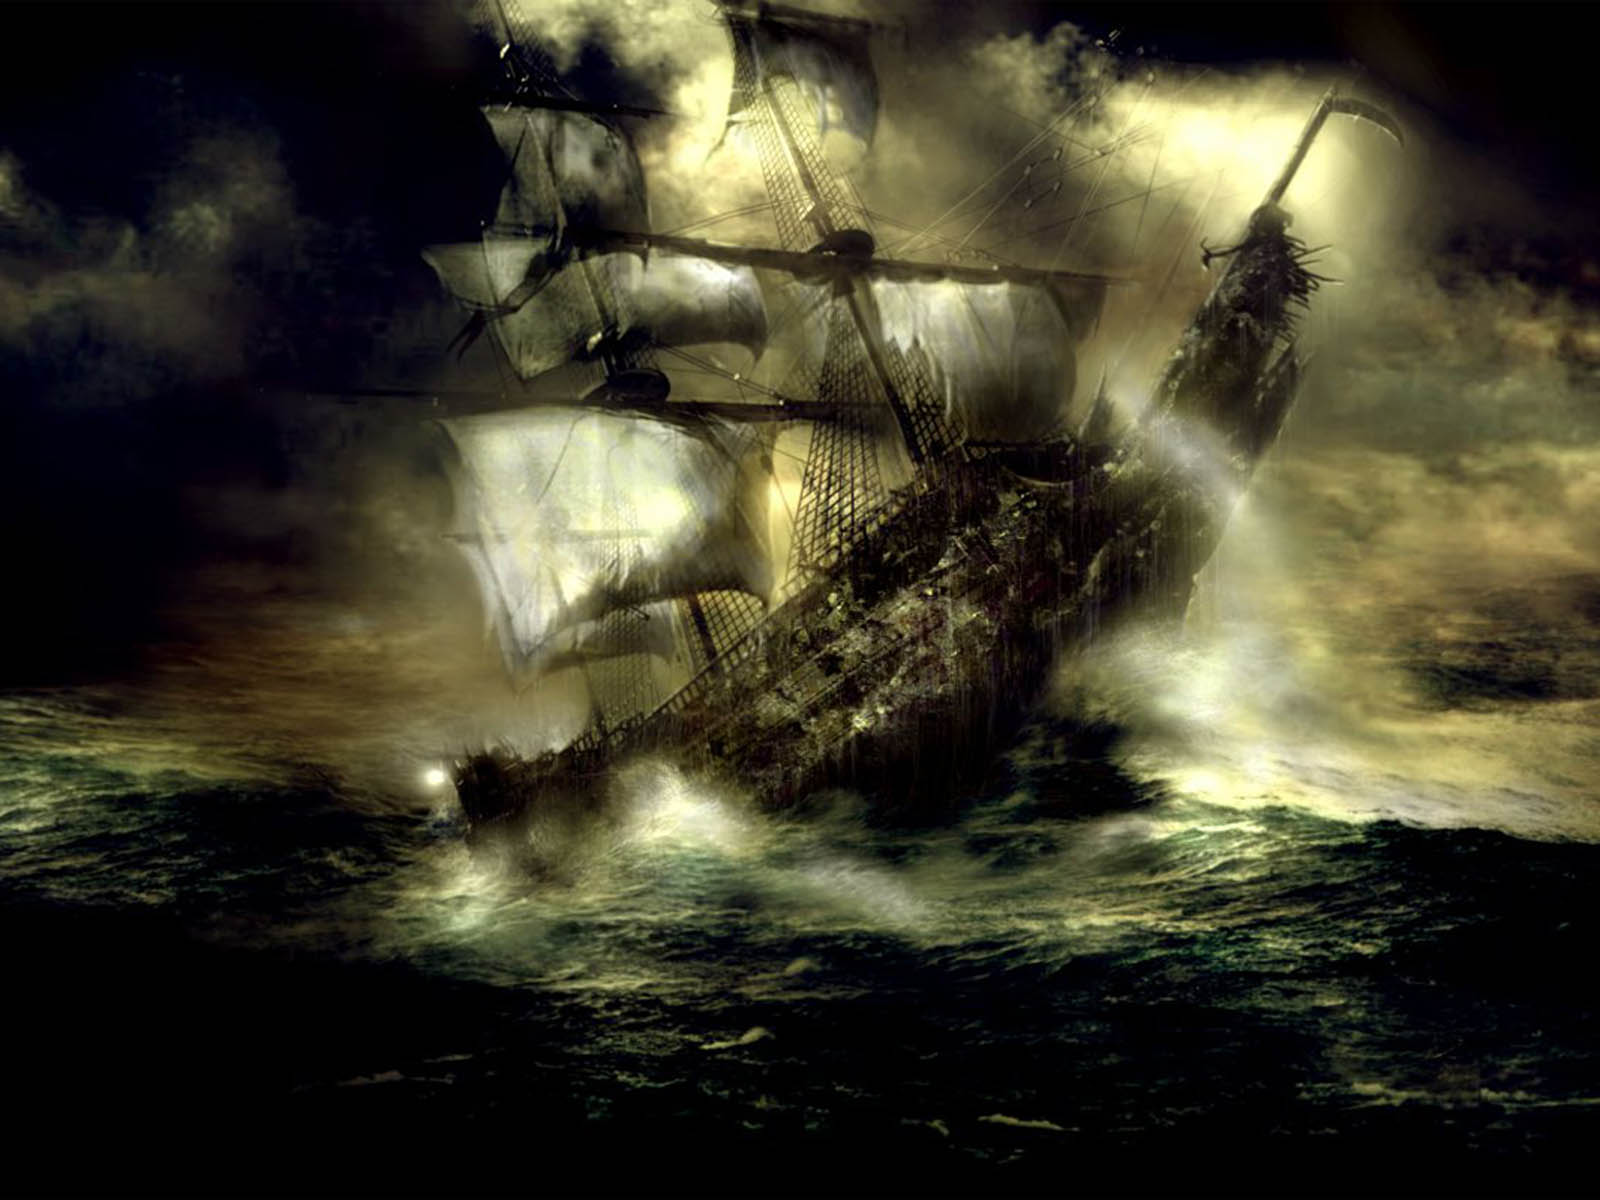 pirate ship computer wallpapers - photo #33